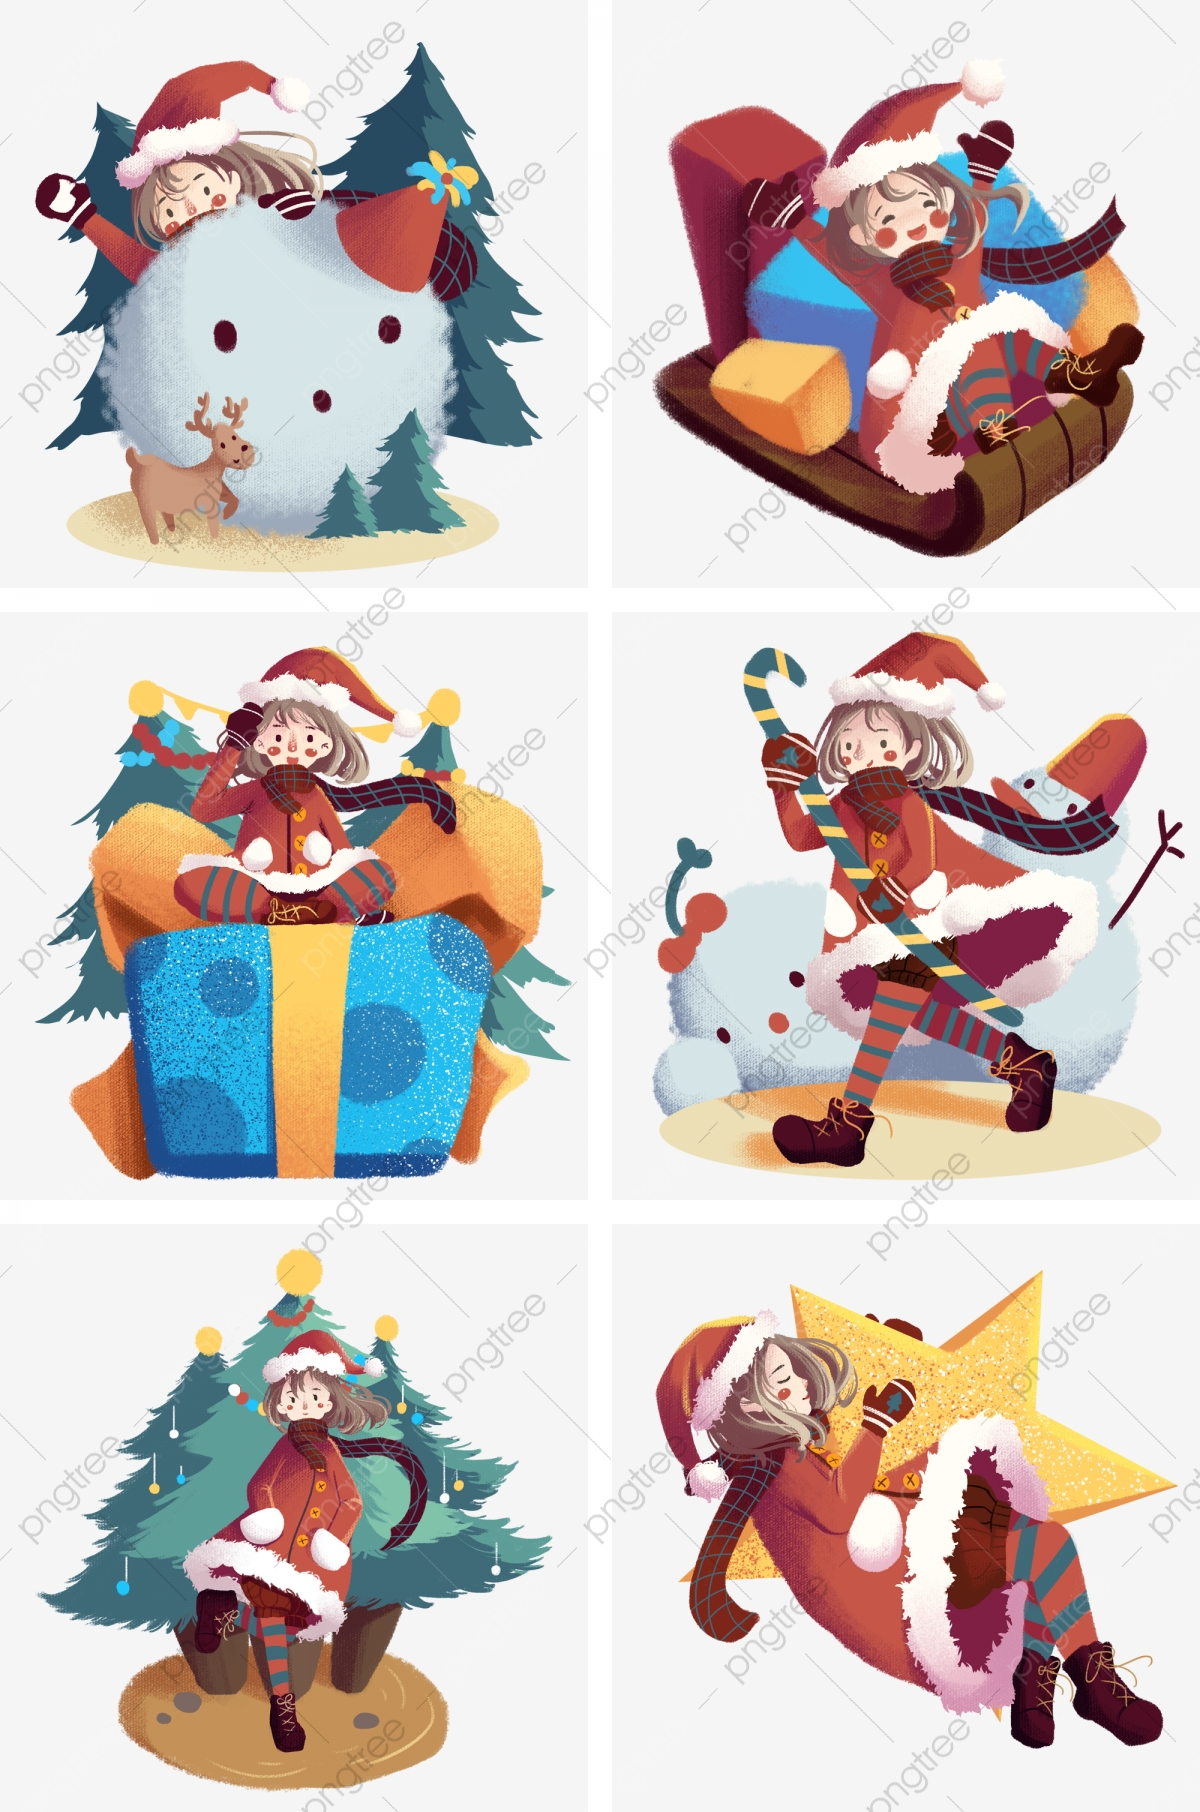 Cute Christmas Gifts For Girlfriend.Christmas Scene Cute Girl Girl With Christmas Hat Christmas